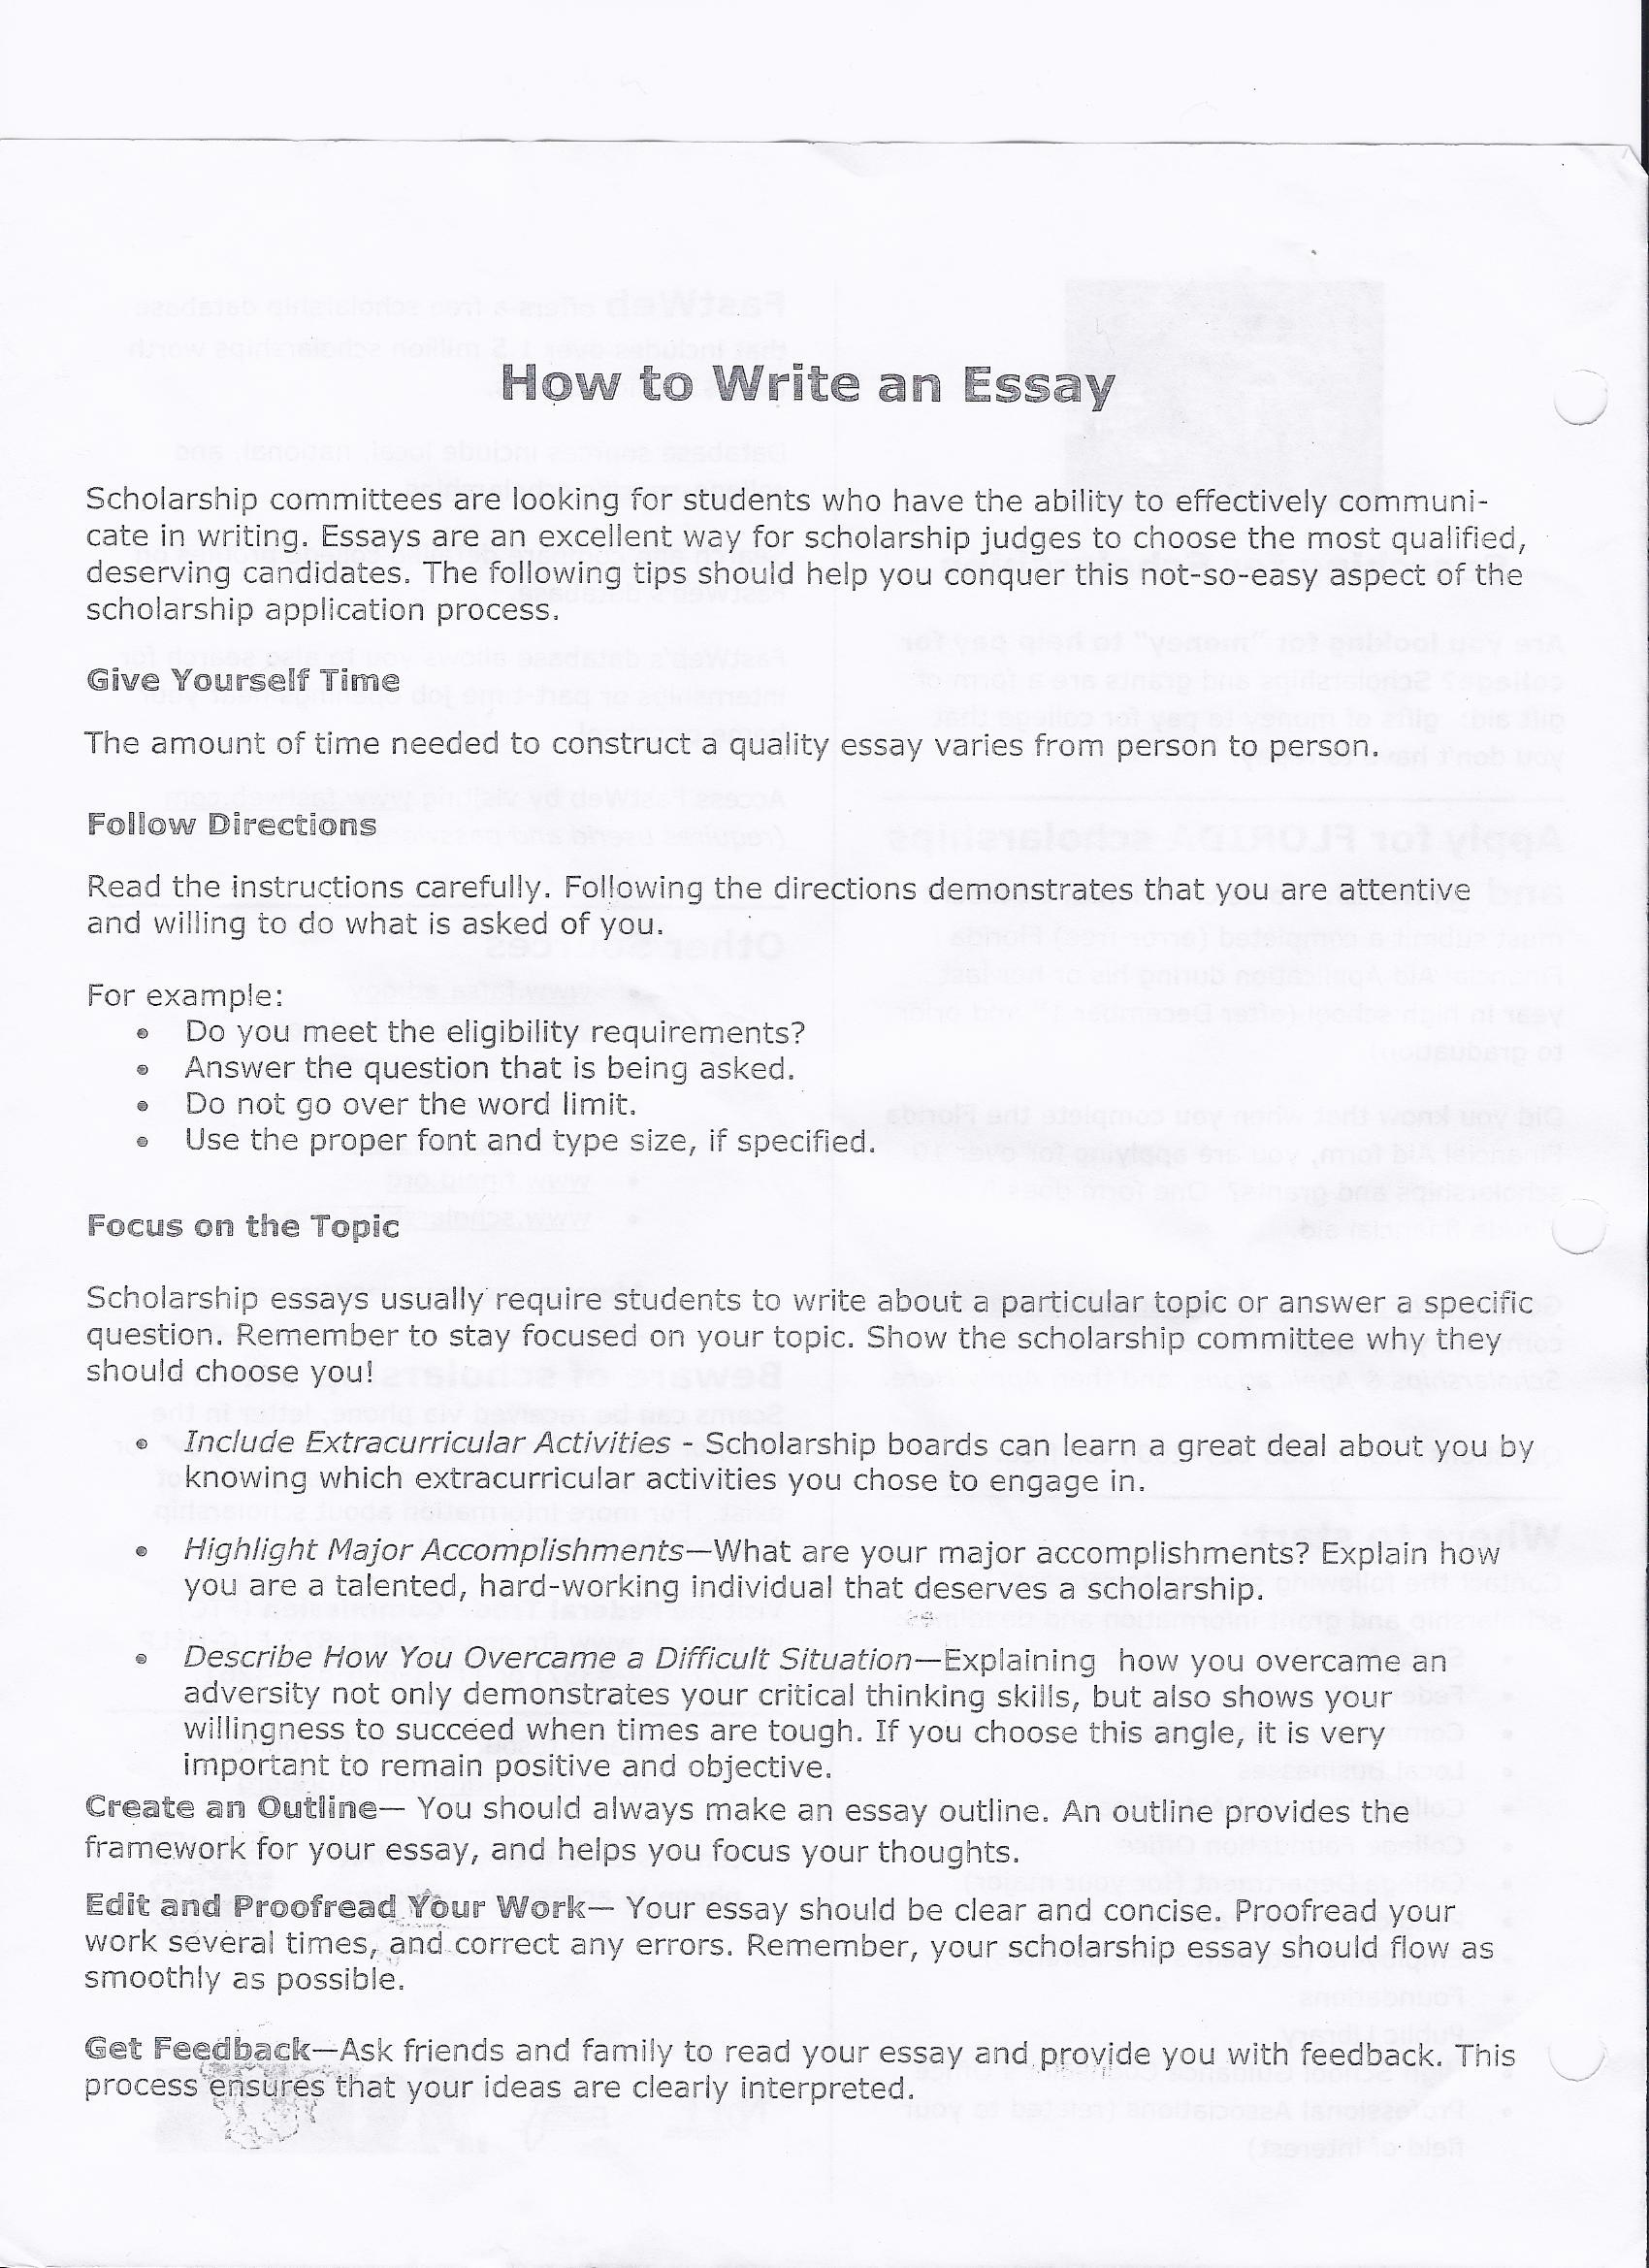 araby essay araby essay ideas collage essay collage essay collage  collage essay collage essay collage essay jonathon lay personal collage essaycollage essay buy key stage geography